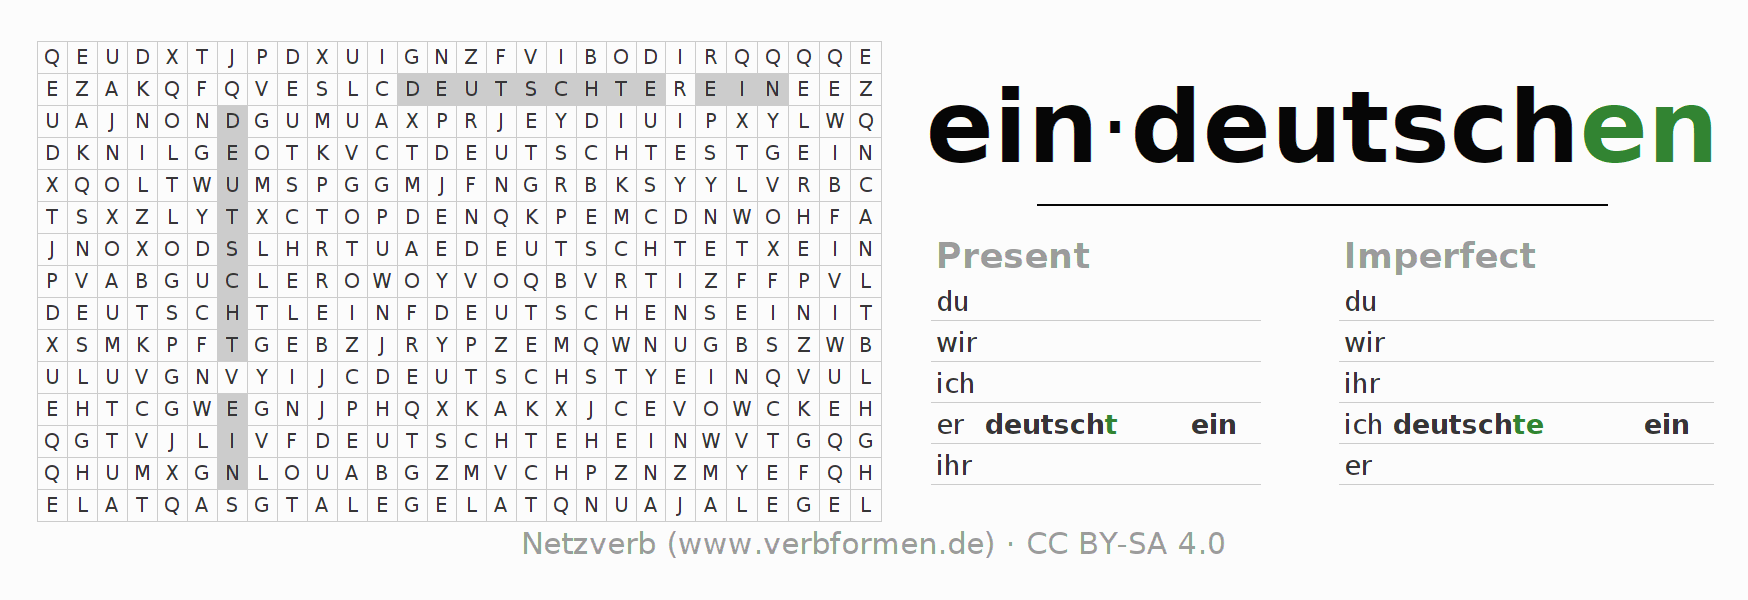 Word search puzzle for the conjugation of the verb eindeutschen